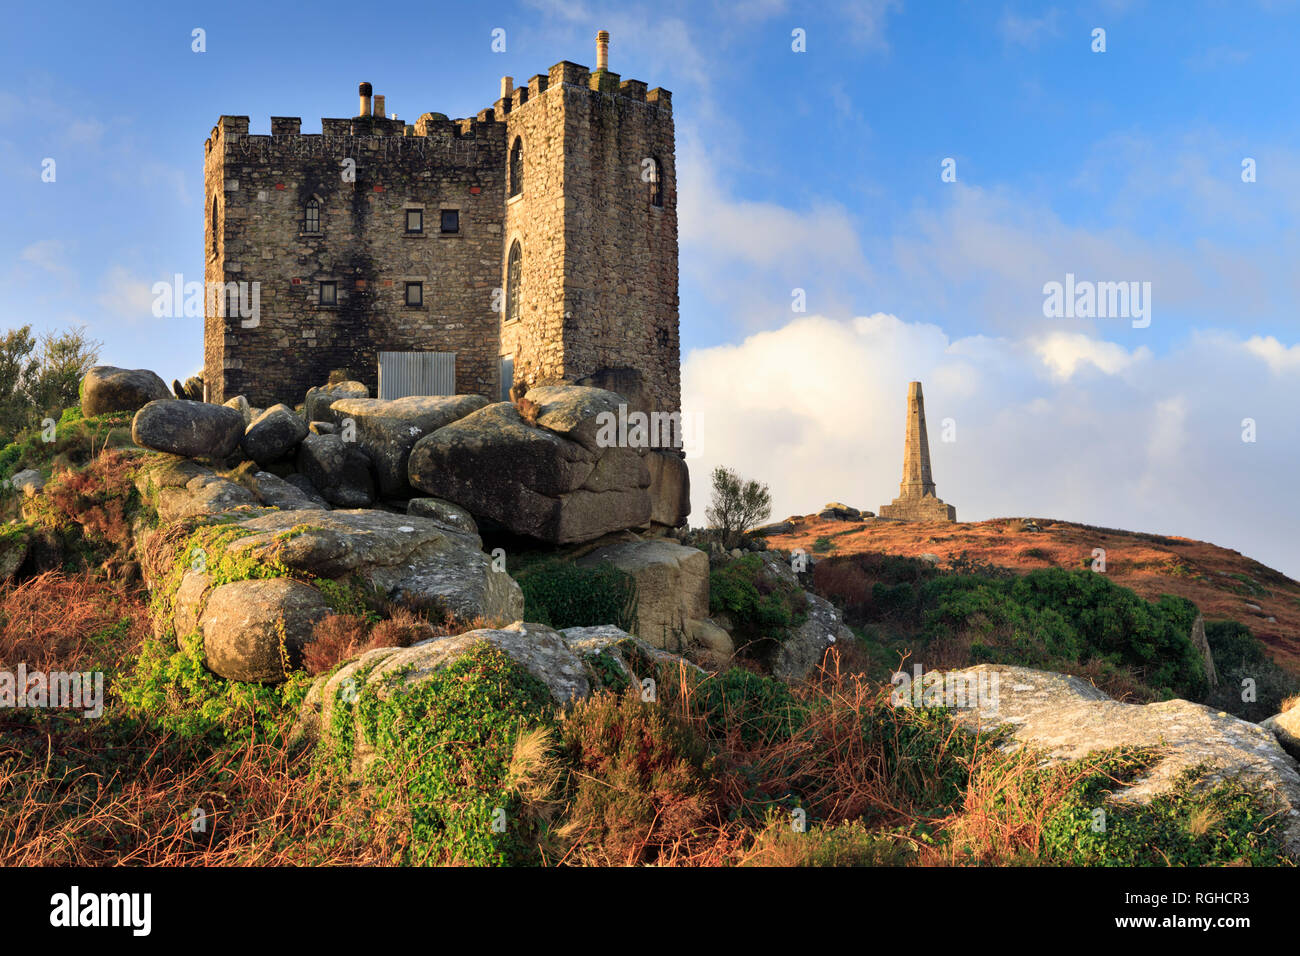 Carn Brea Castle and the Bassett Monument - Stock Image